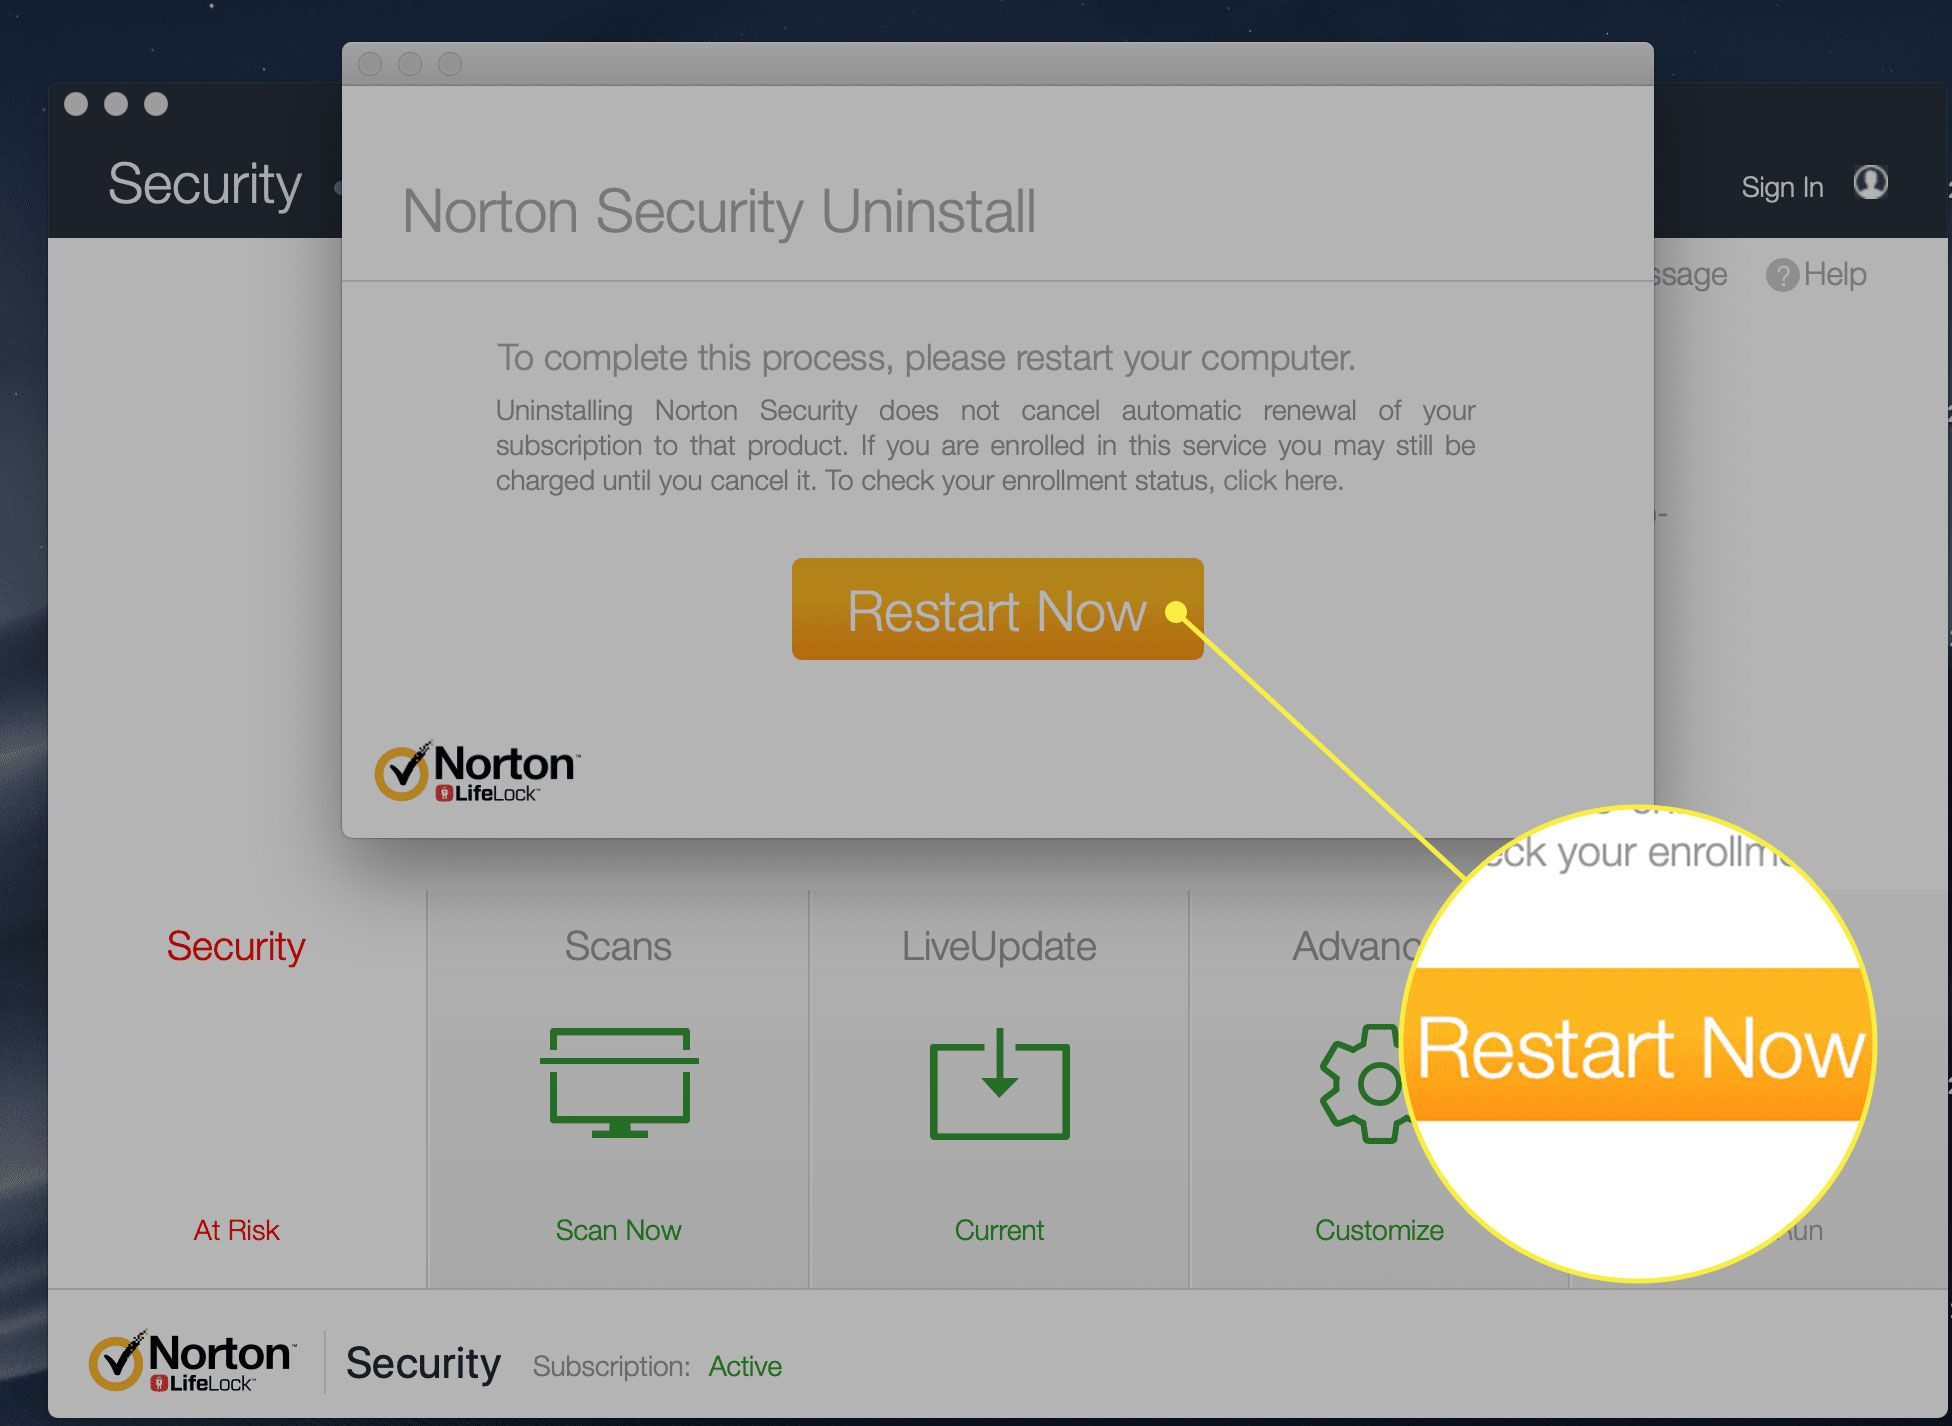 The Restart Now button in Norton Security Uninstall